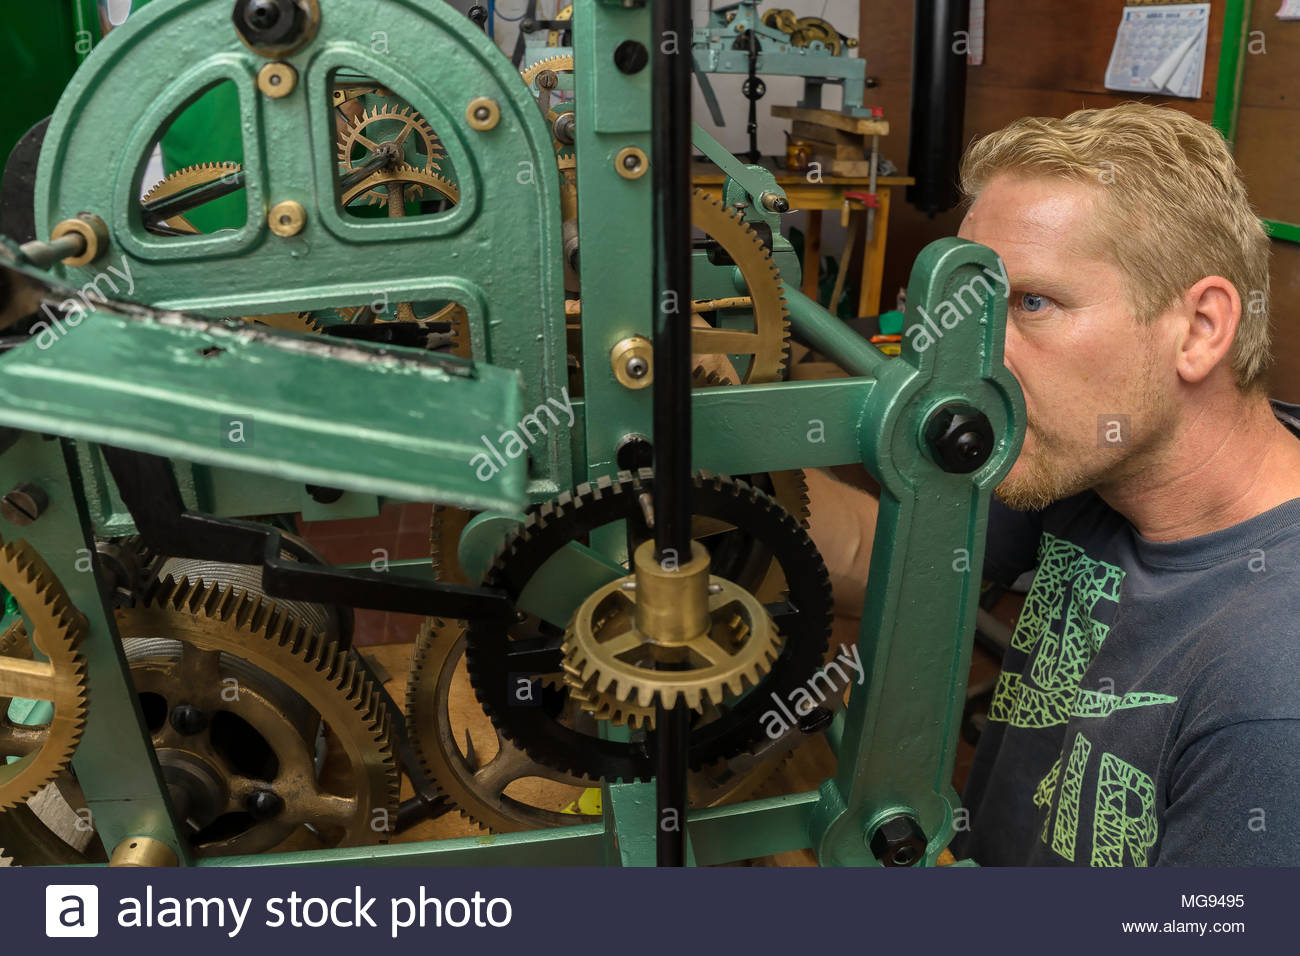 Clock Repair Shop: Blond man working on a 1926 German-made church clock from Belen, Nicaragua. Stock Photo